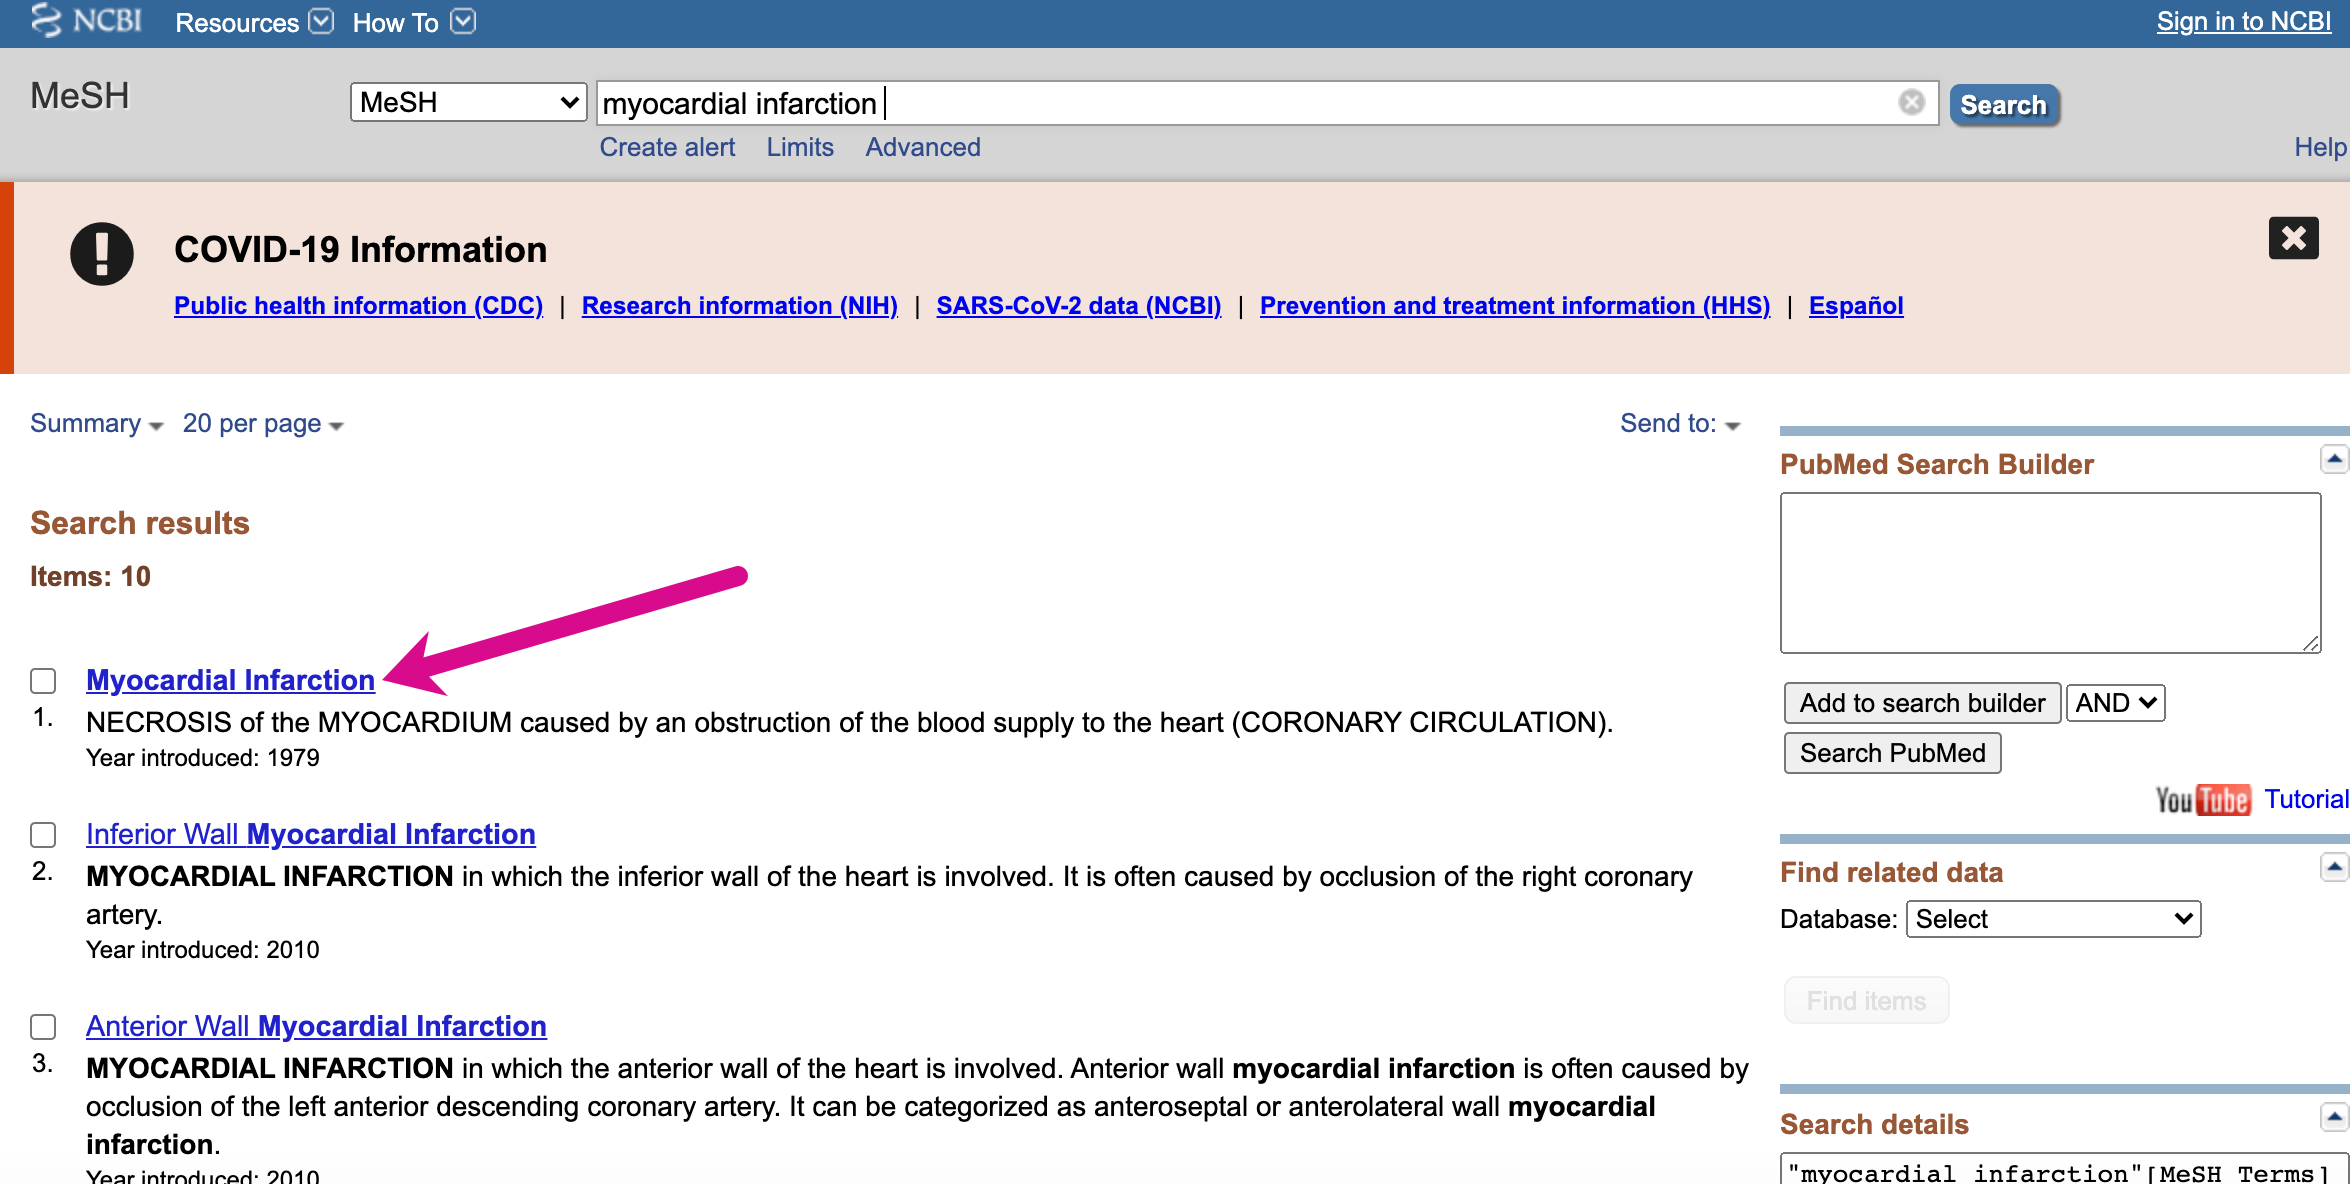 """Screenshot showing search for """"myocardial infarction"""" in the MeSH database, pointing to the most relevant MeSH term in the results, """"Myocardial Infarction"""""""